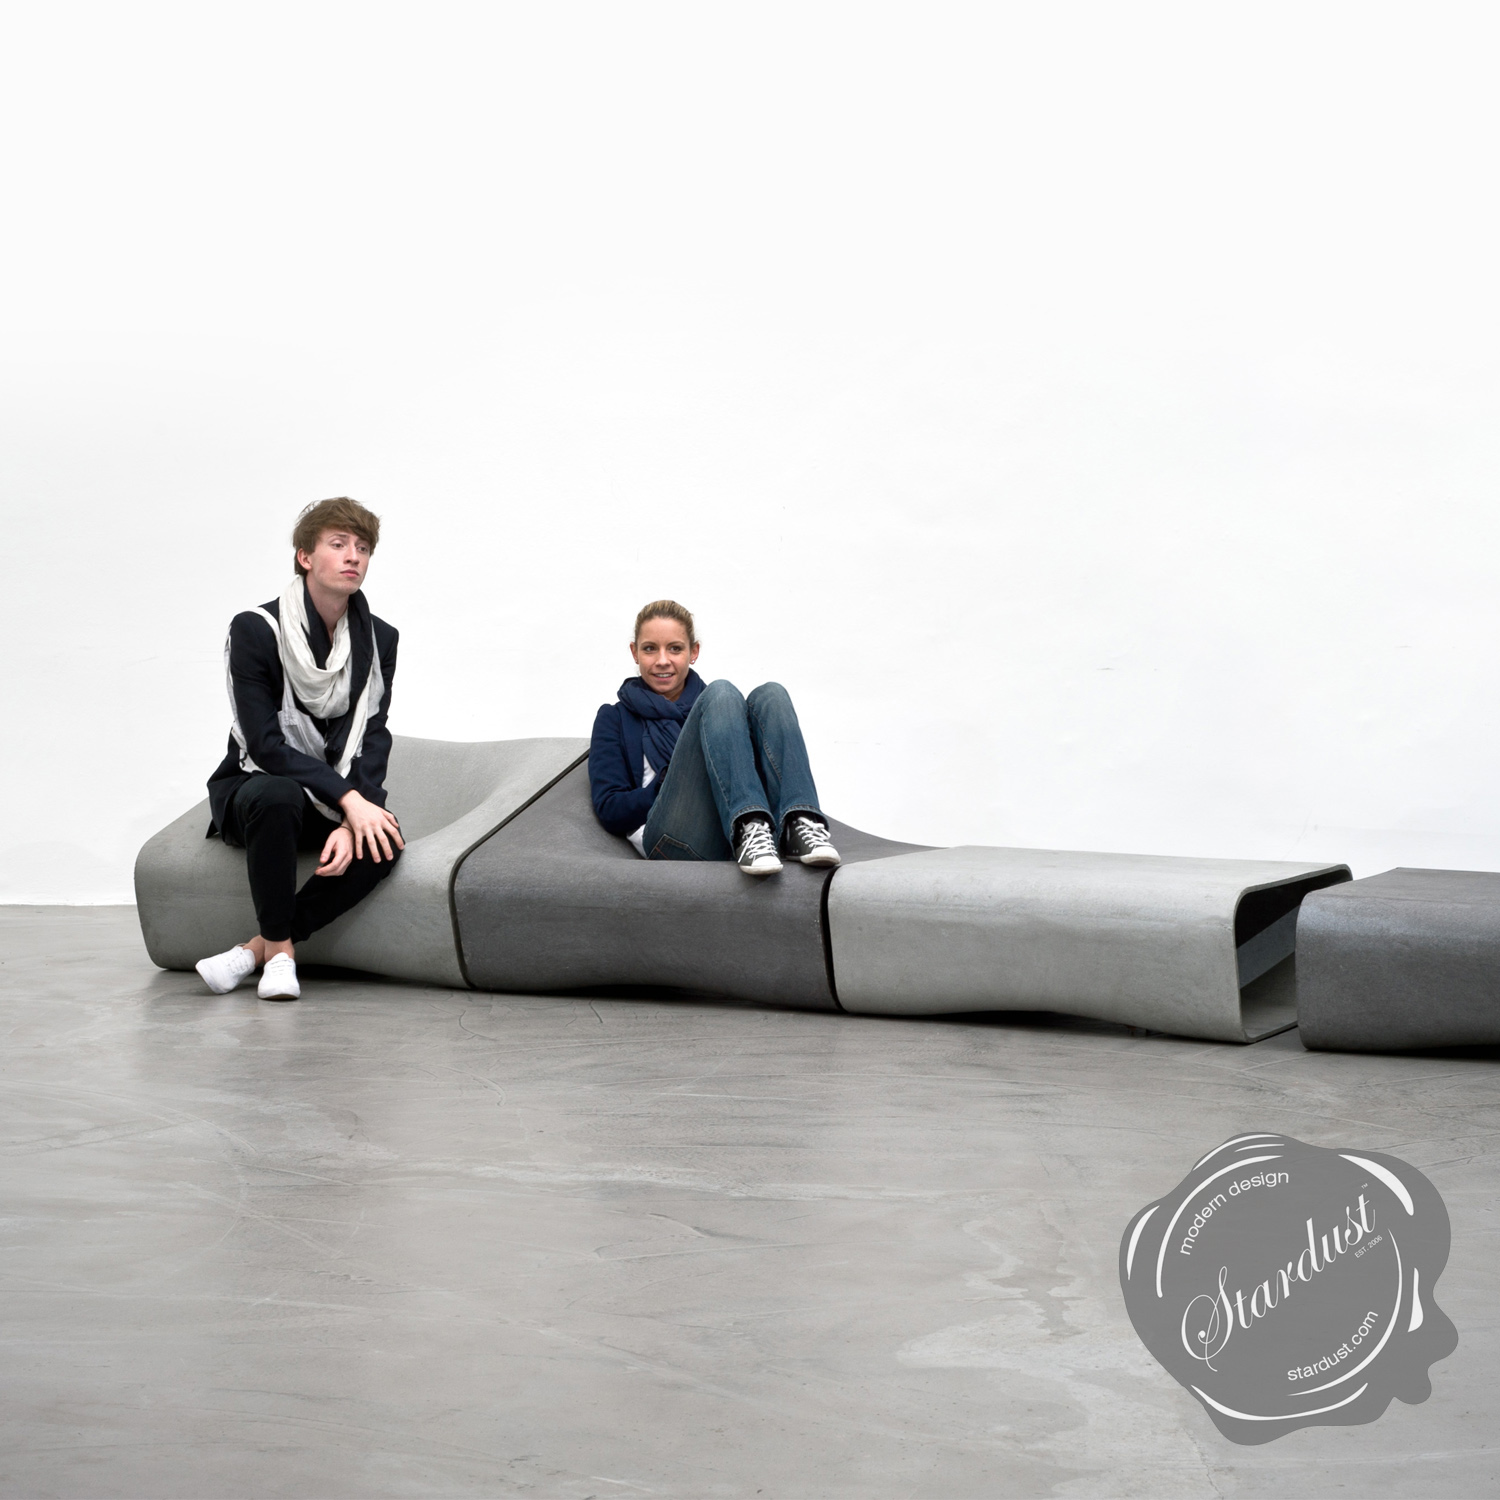 dune outdoor furniture. DUNE Modern Modular Outdoor Furniture Designed By Rainer Mutsch Dune